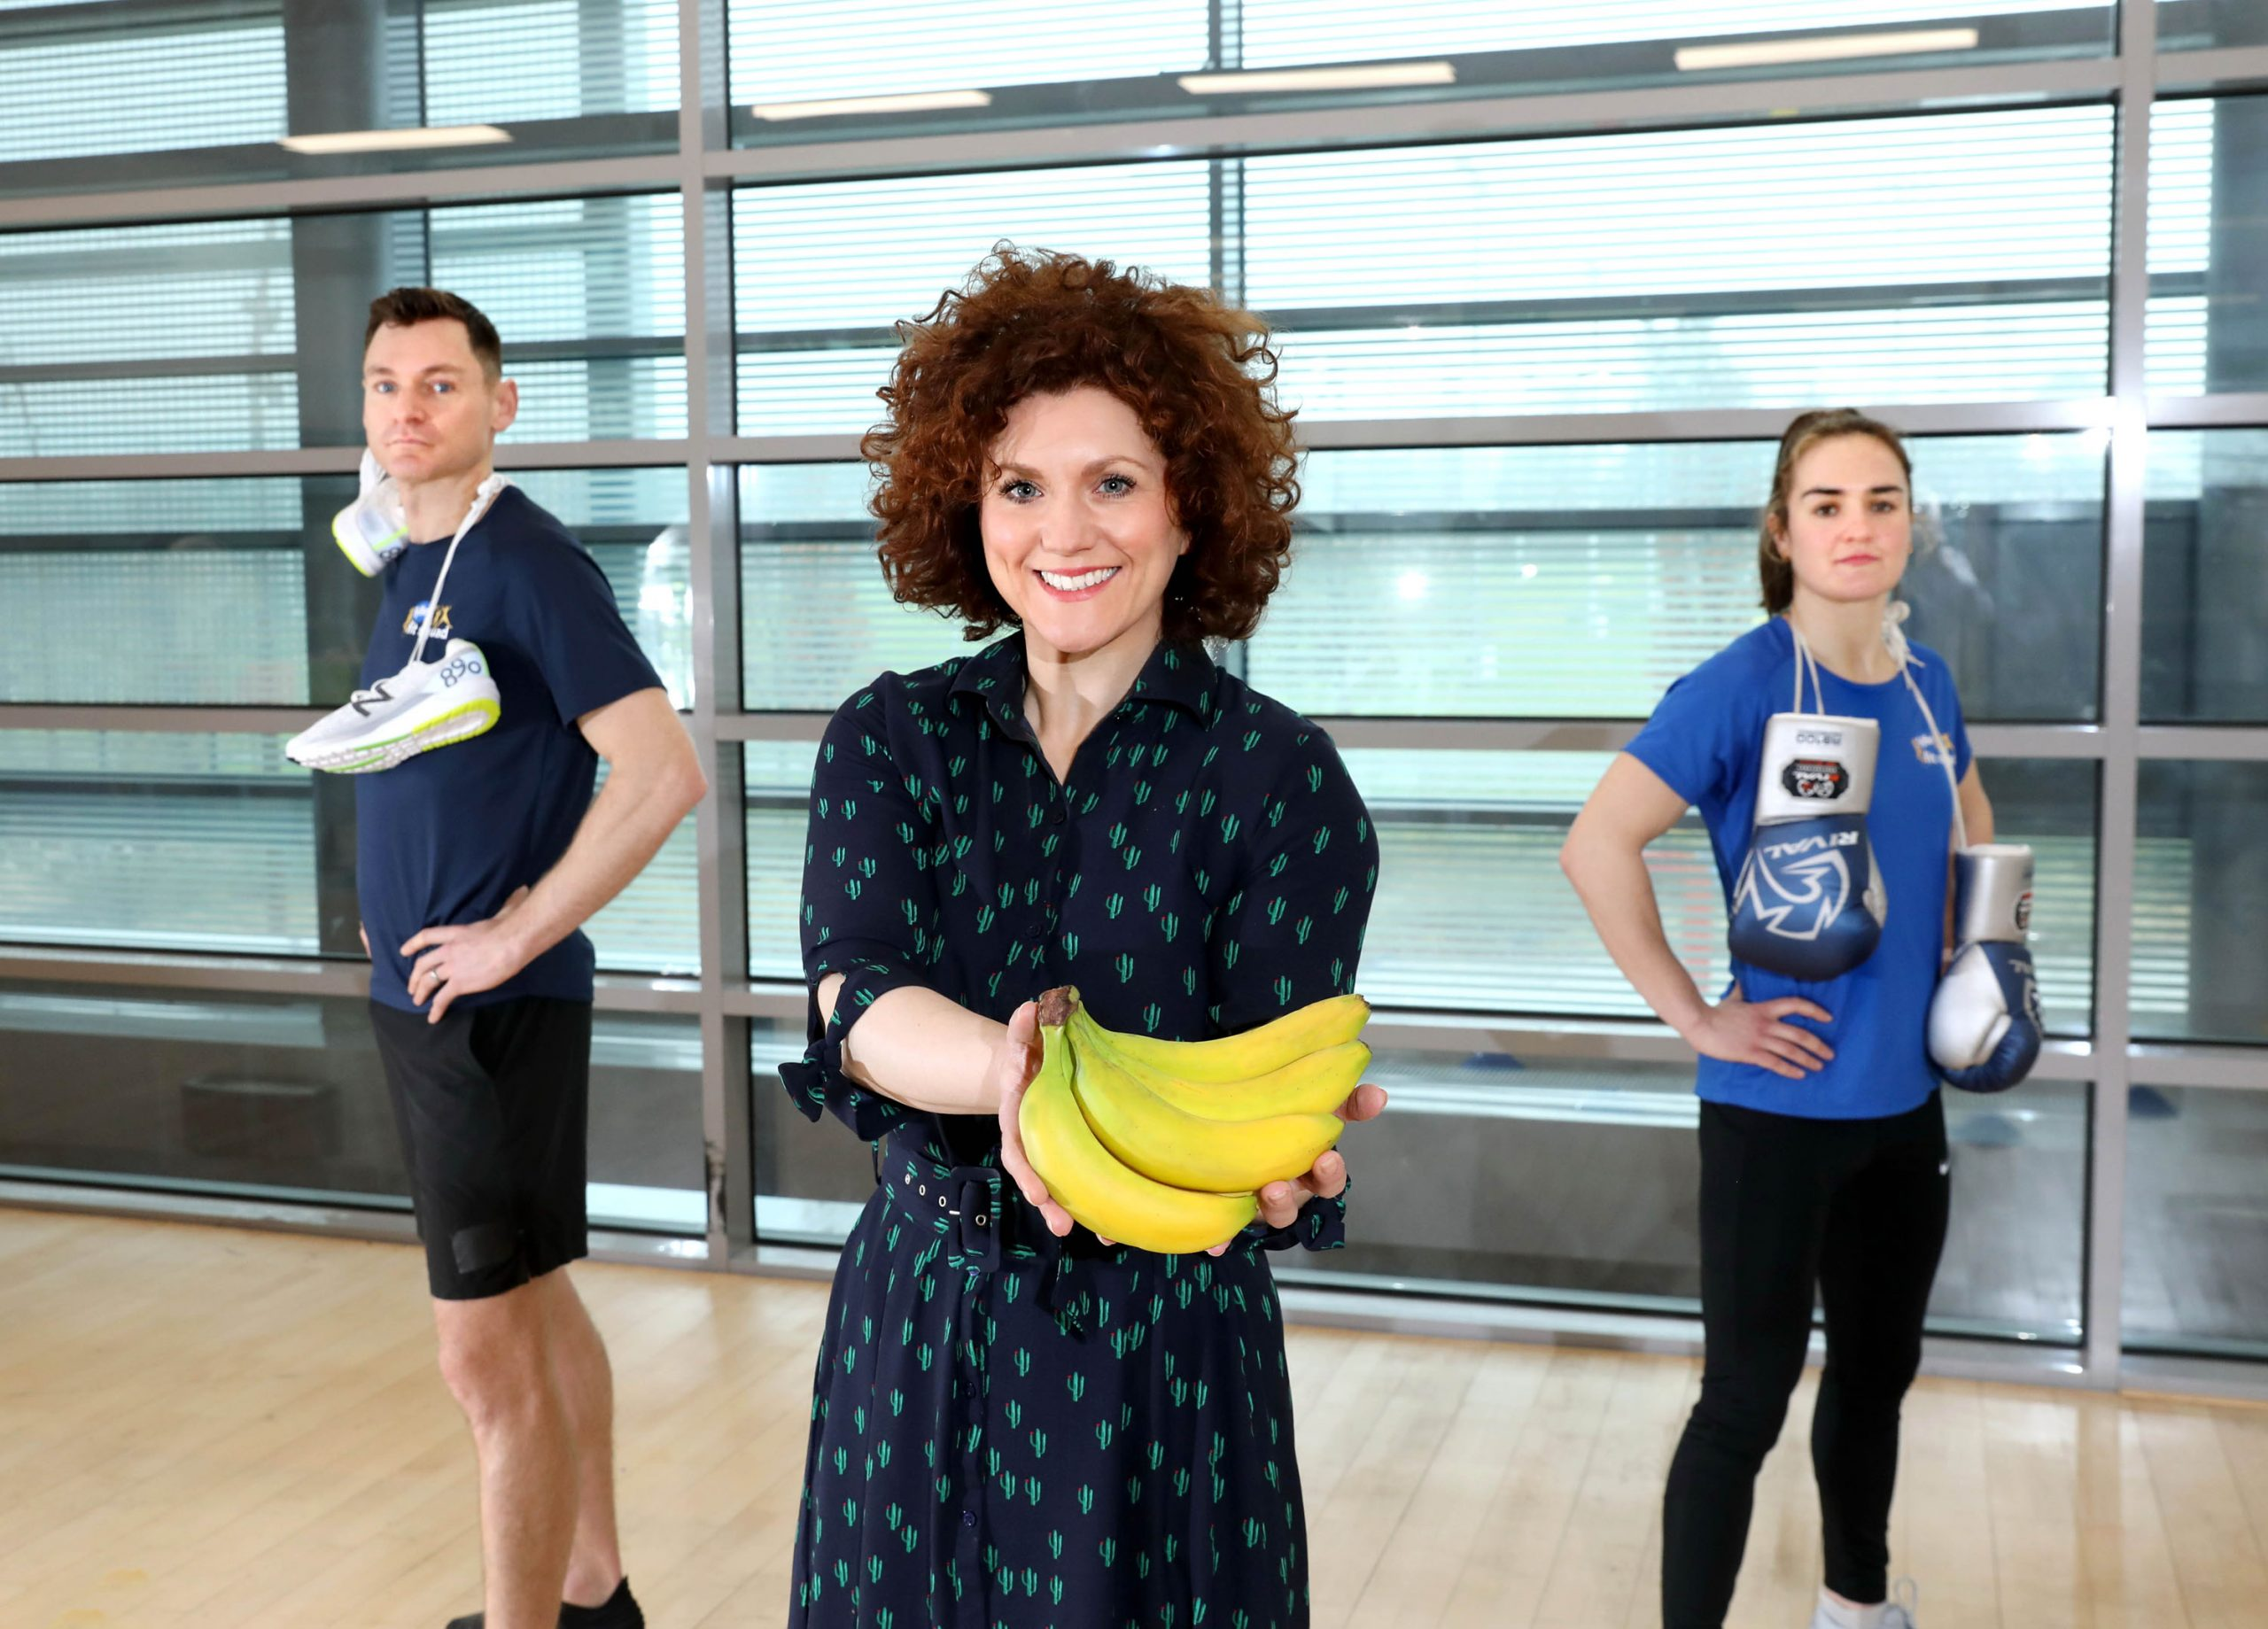 Sports Stars Sign-Up for Fyffes Fitness Programme